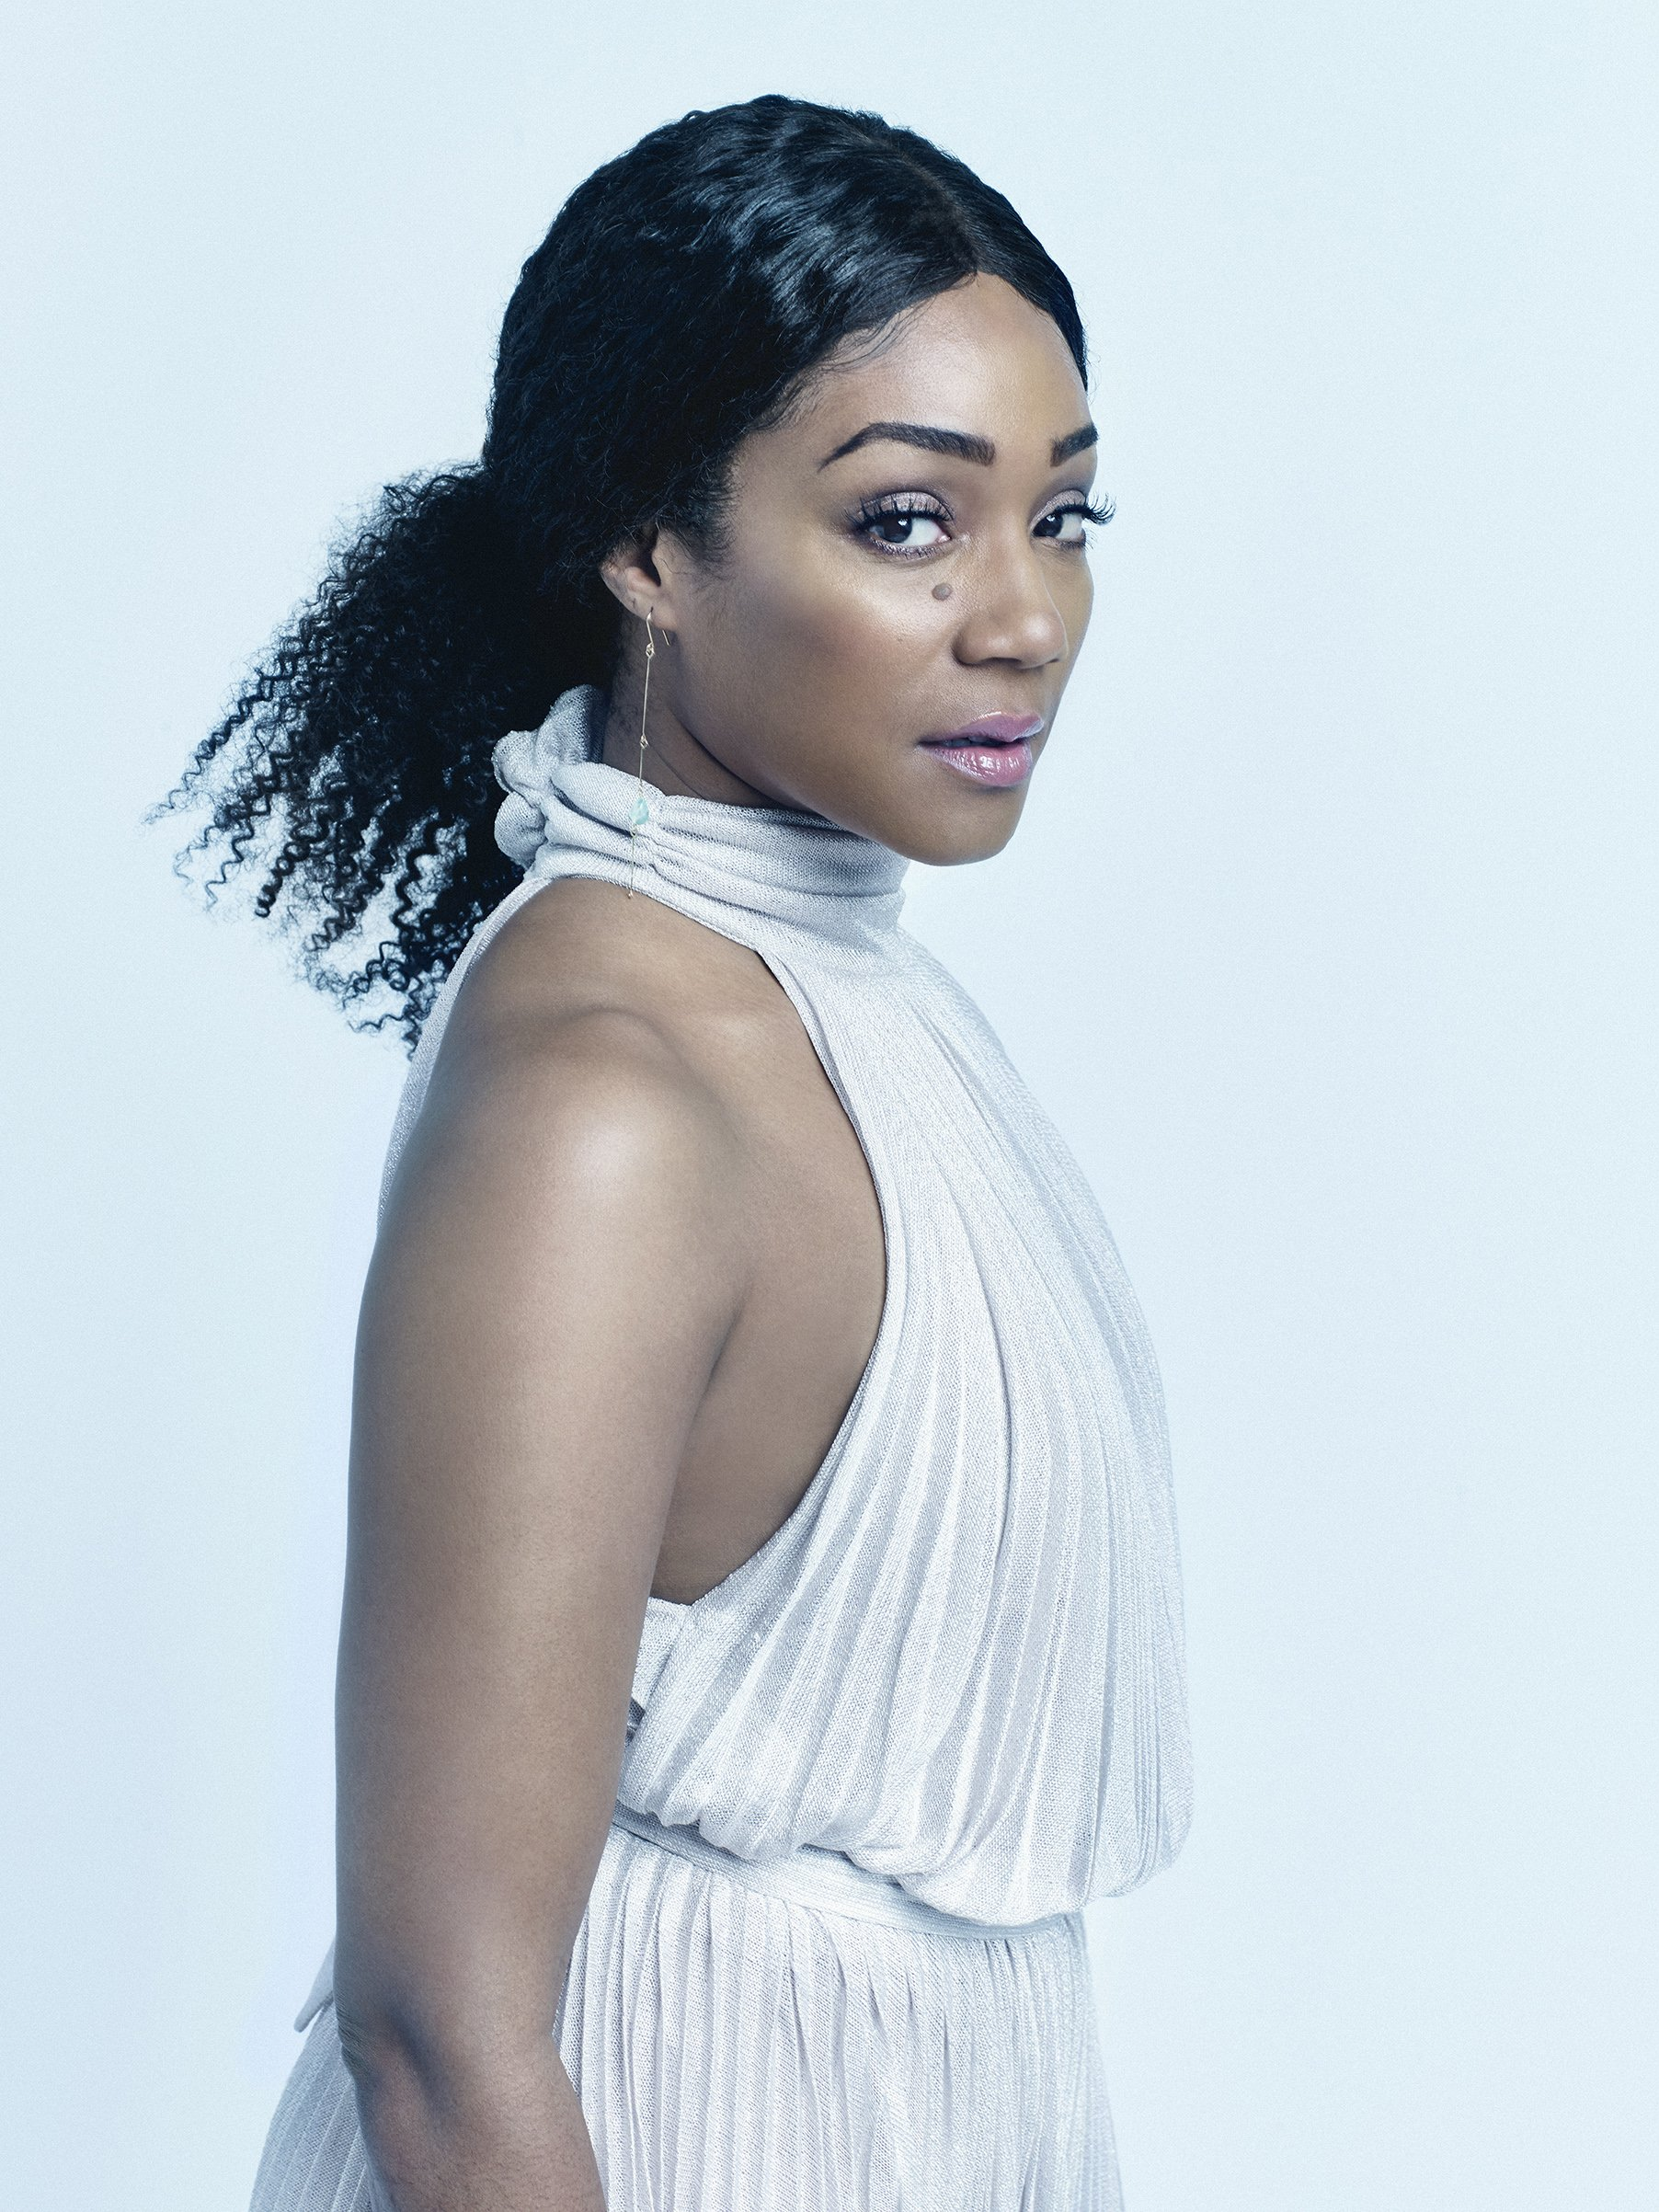 Tiffany Haddish is a model that appeared in Drake Nice For What